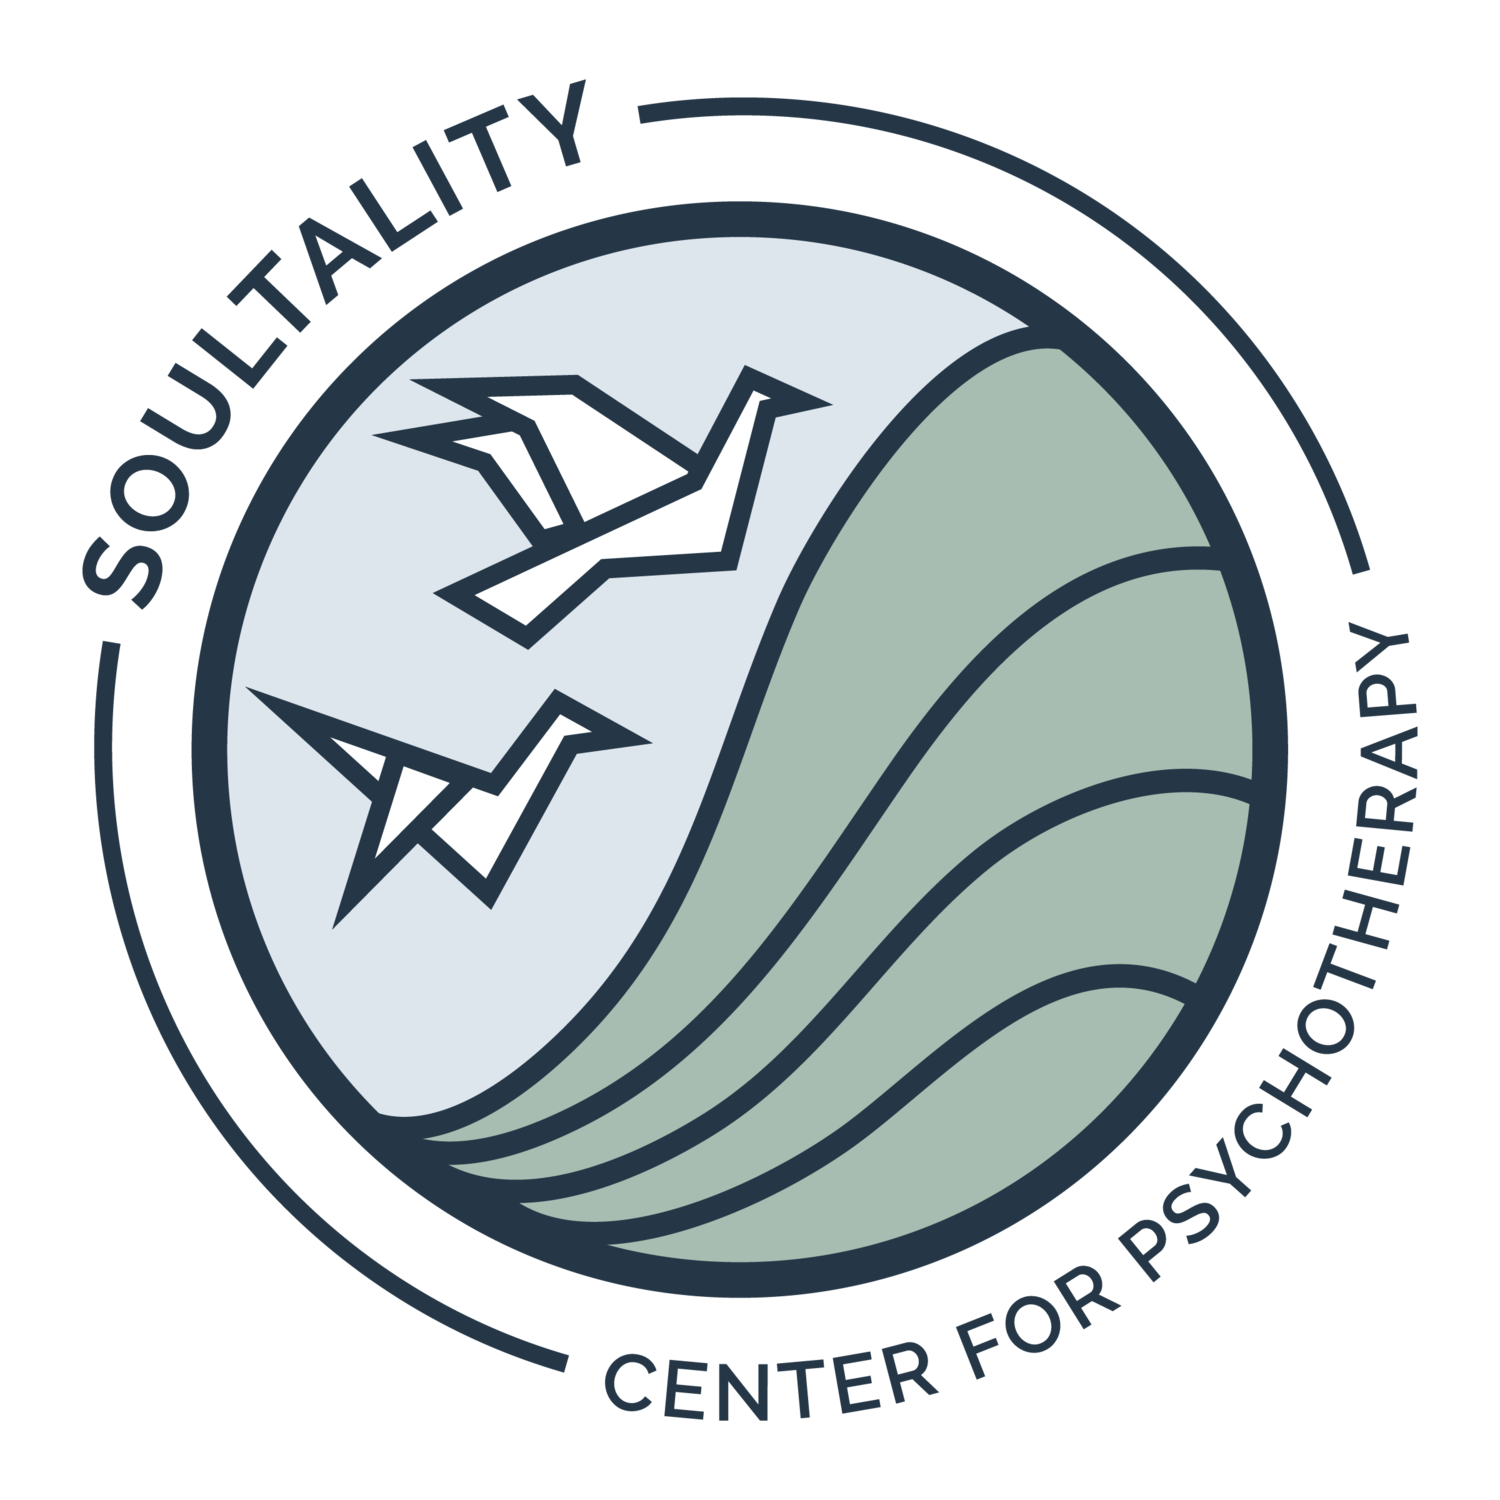 Soultality Center for Psychotherapy